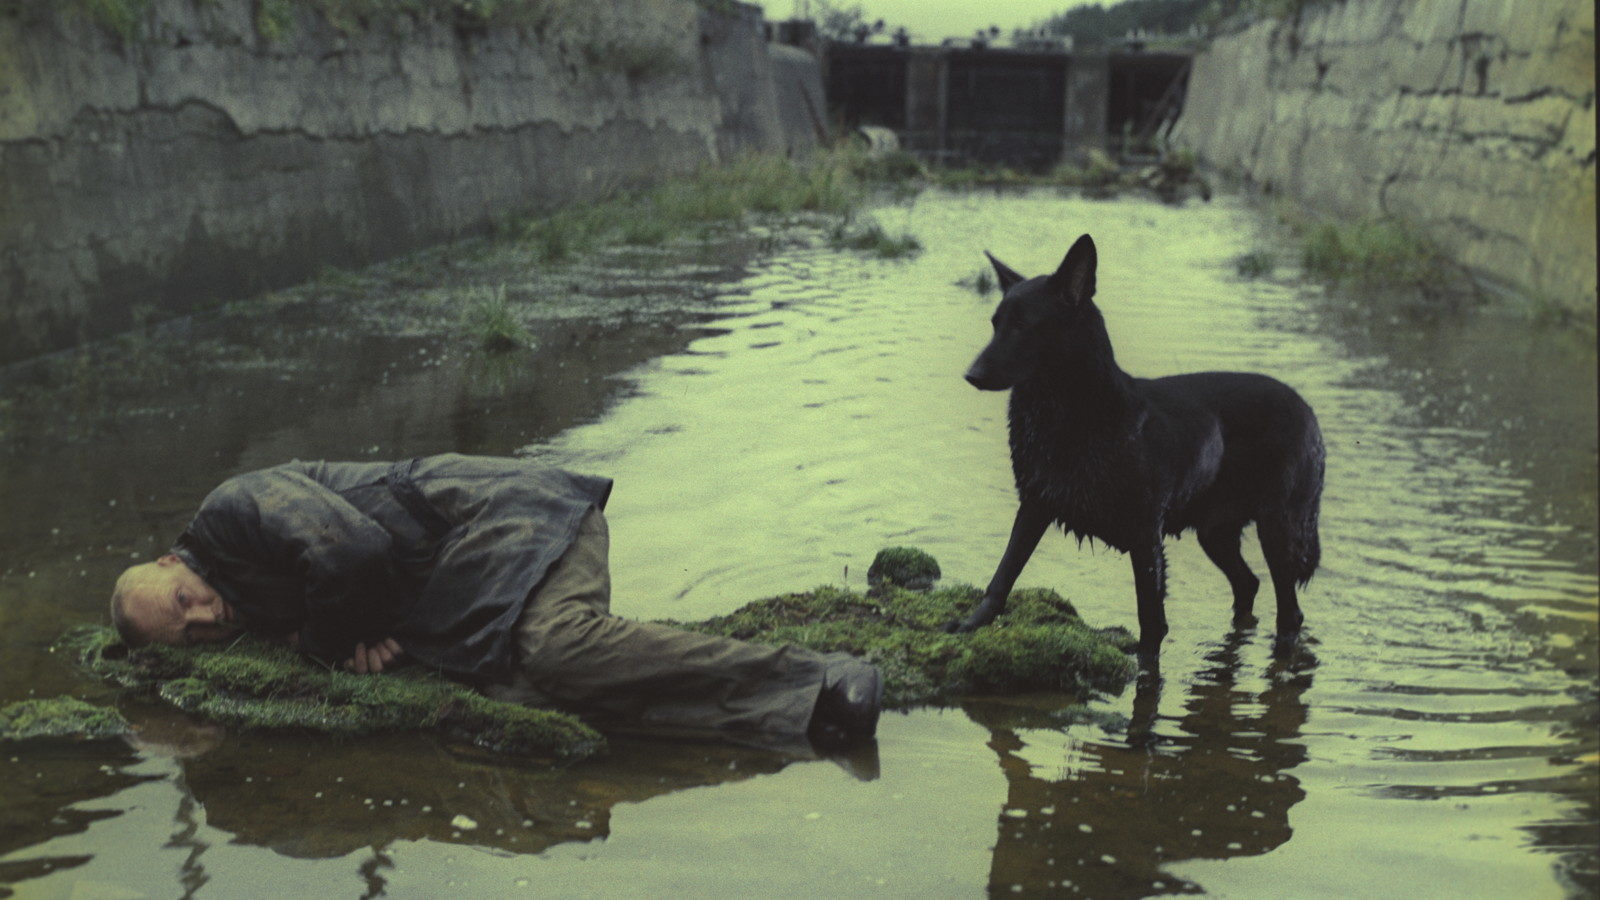 'Stalker' Trailer: Criterion Re-Releases Andrei Tarkovsky's Sci-Fi Classic — Watch